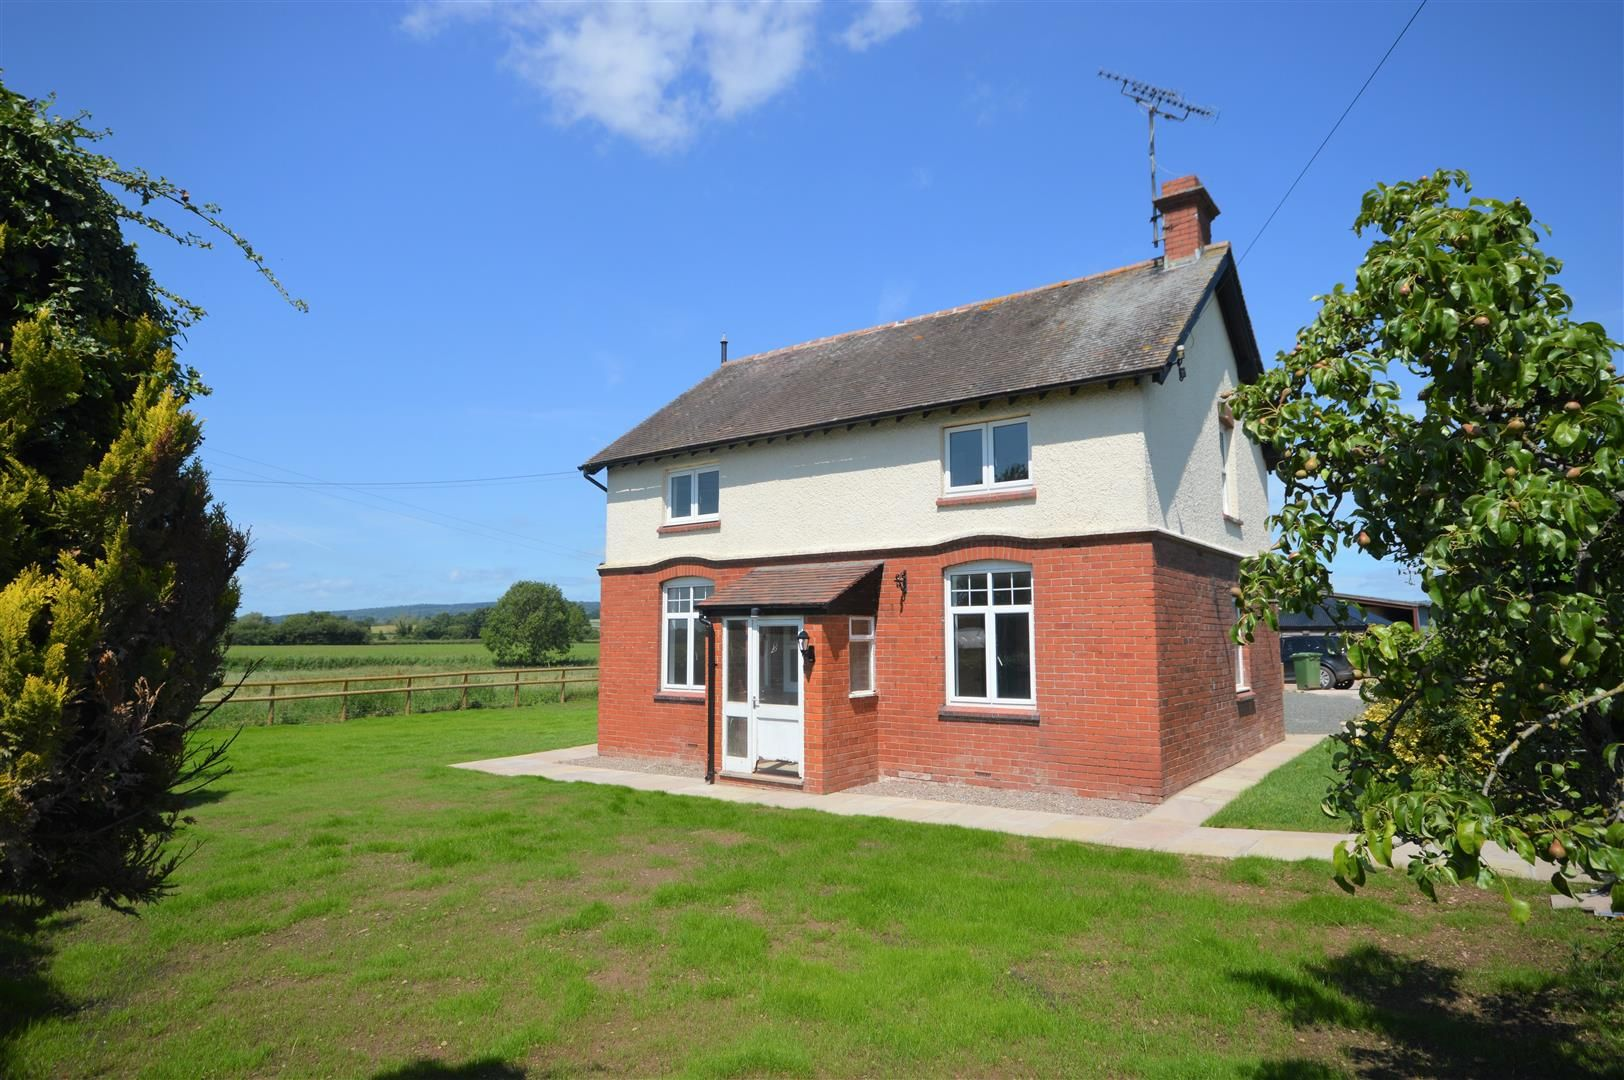 4 bed detached for sale in Moreton Eye, HR6